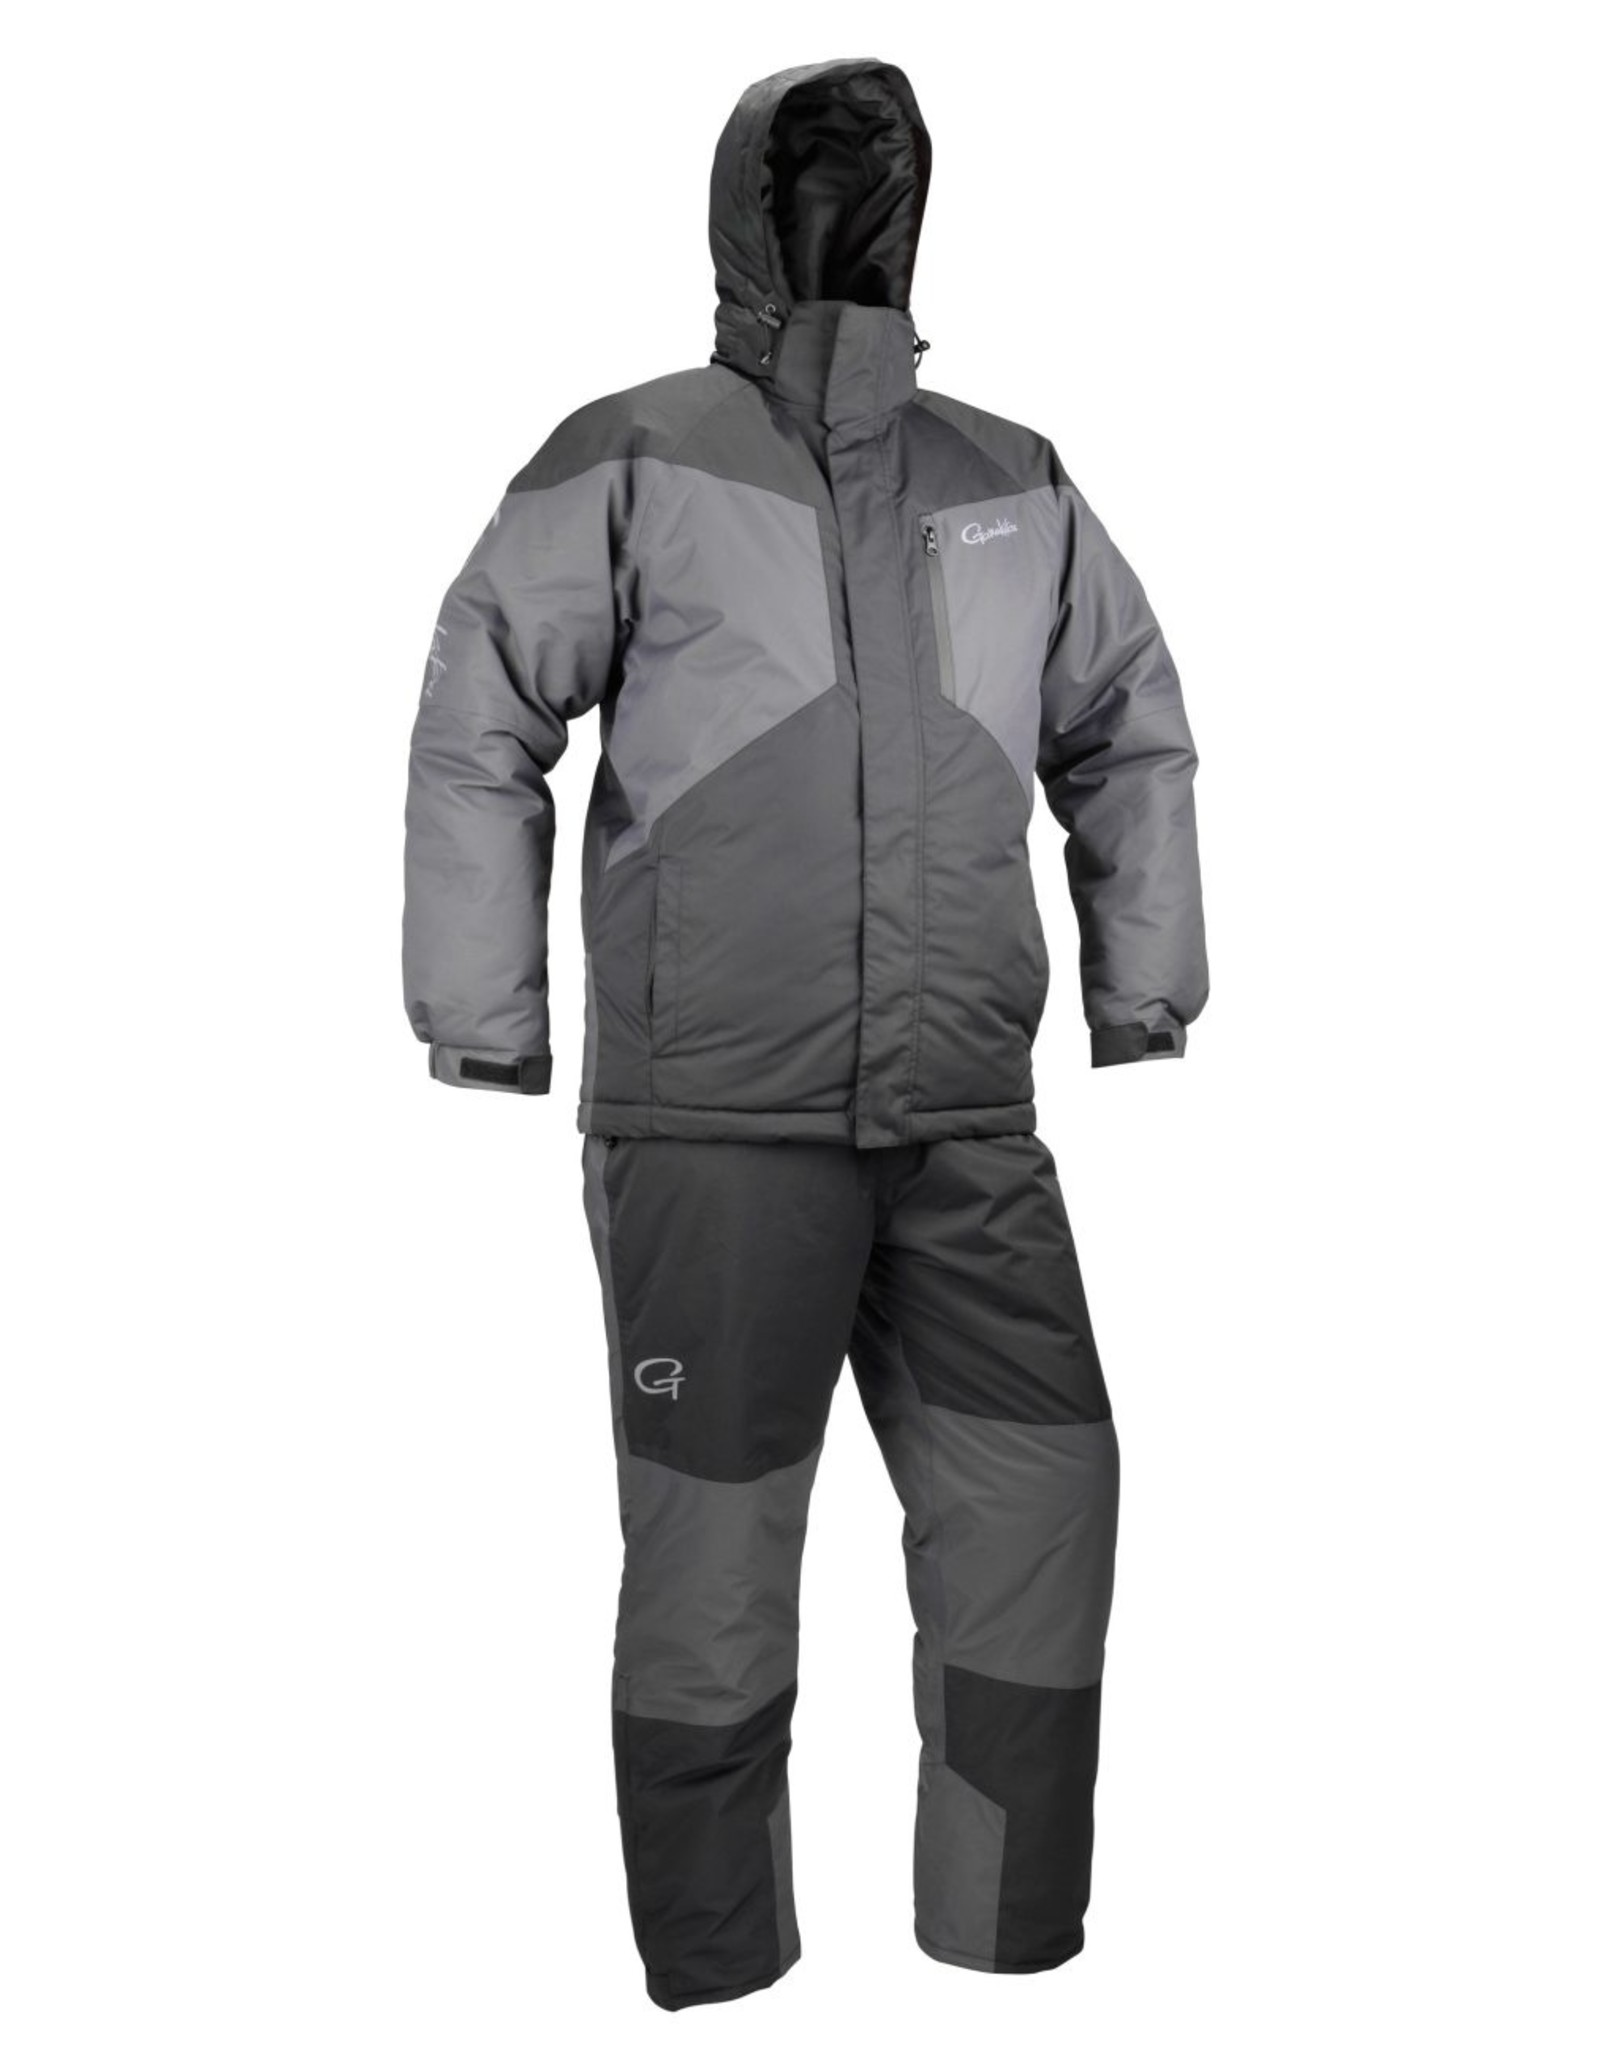 GAMA G-Thermal Suit